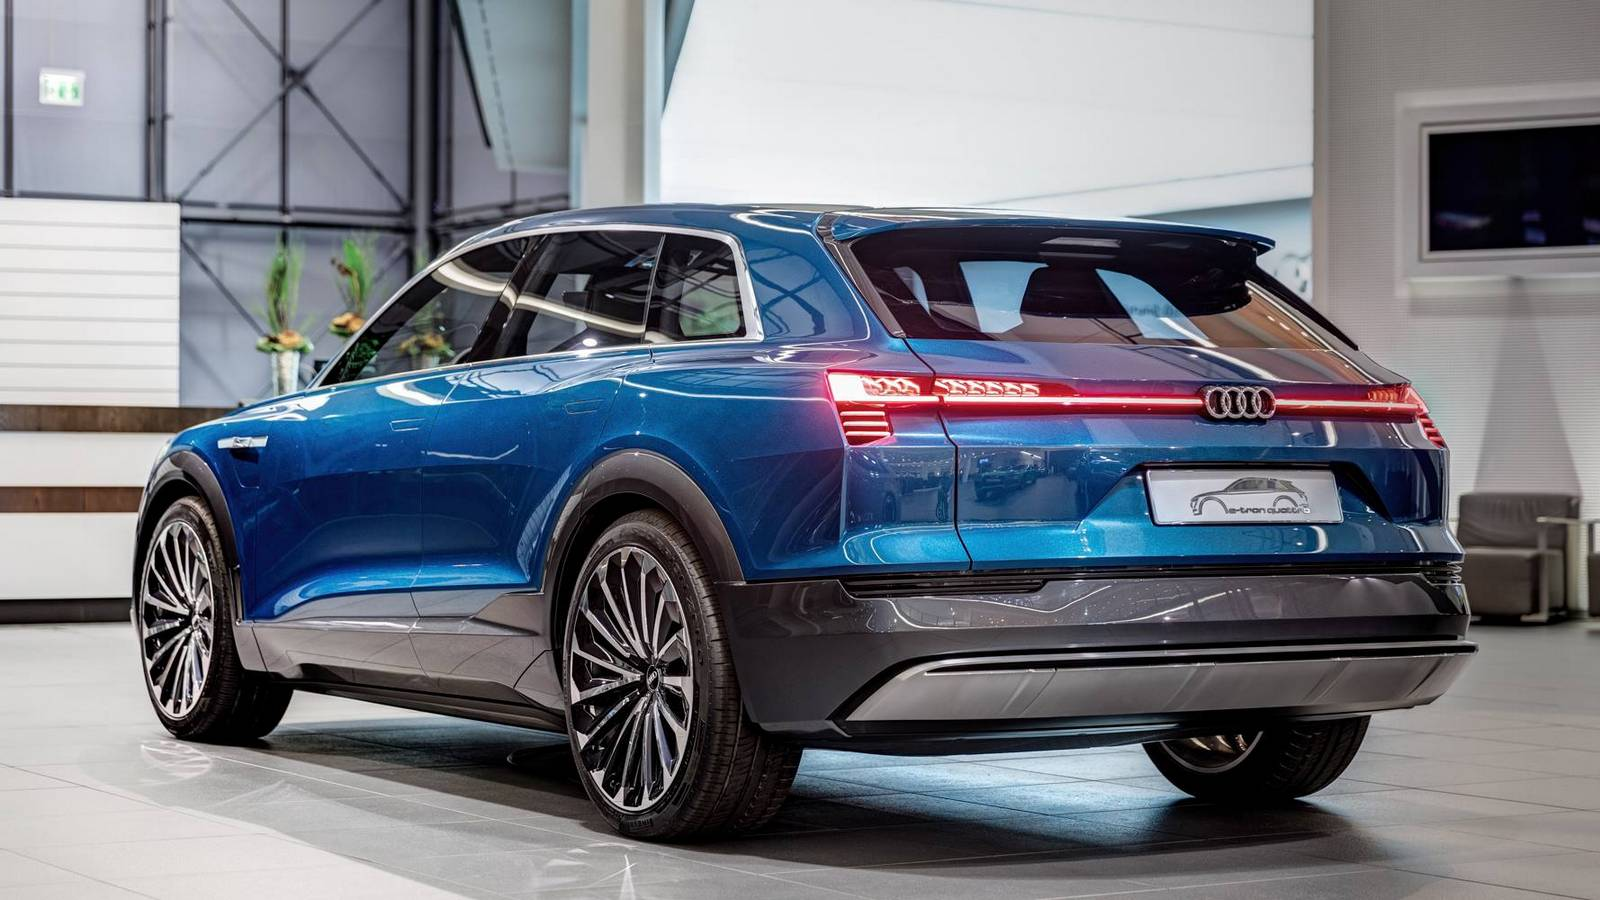 Audi E Tron Quattro Concept Shown At Audi Forum Neckarsulm